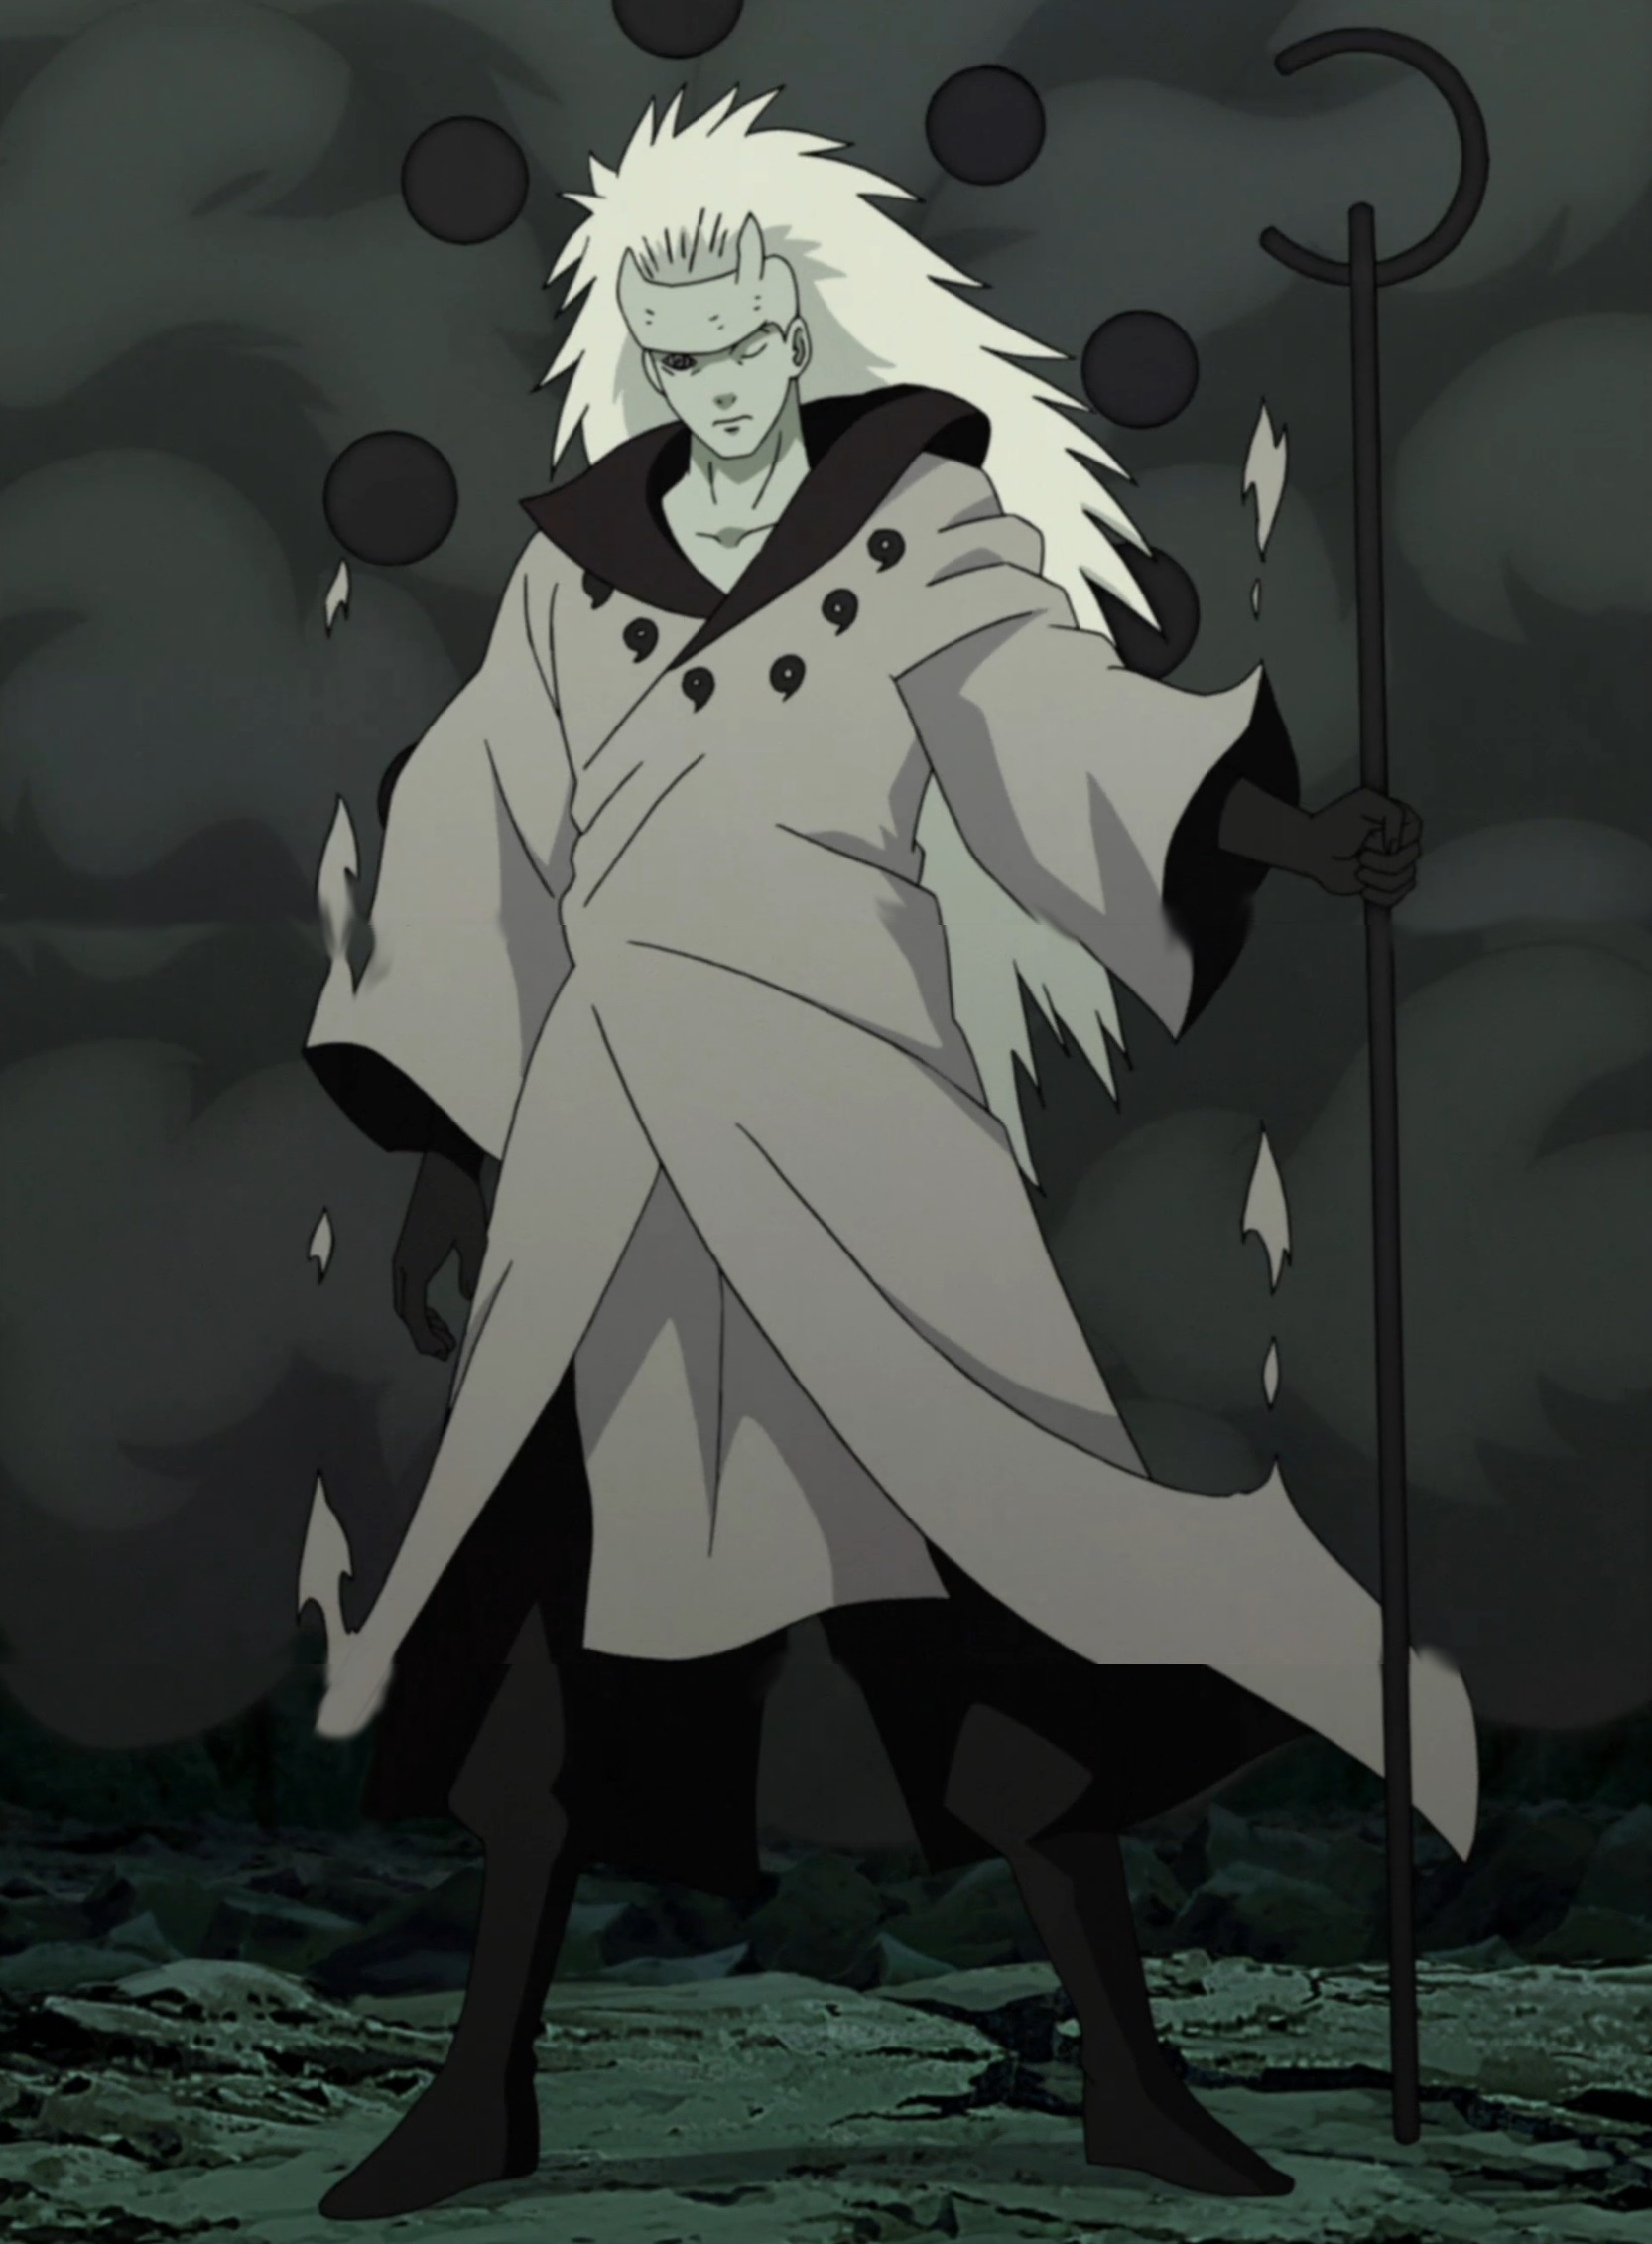 Ten-Tailed Beast | Villains Wiki | FANDOM powered by Wikia